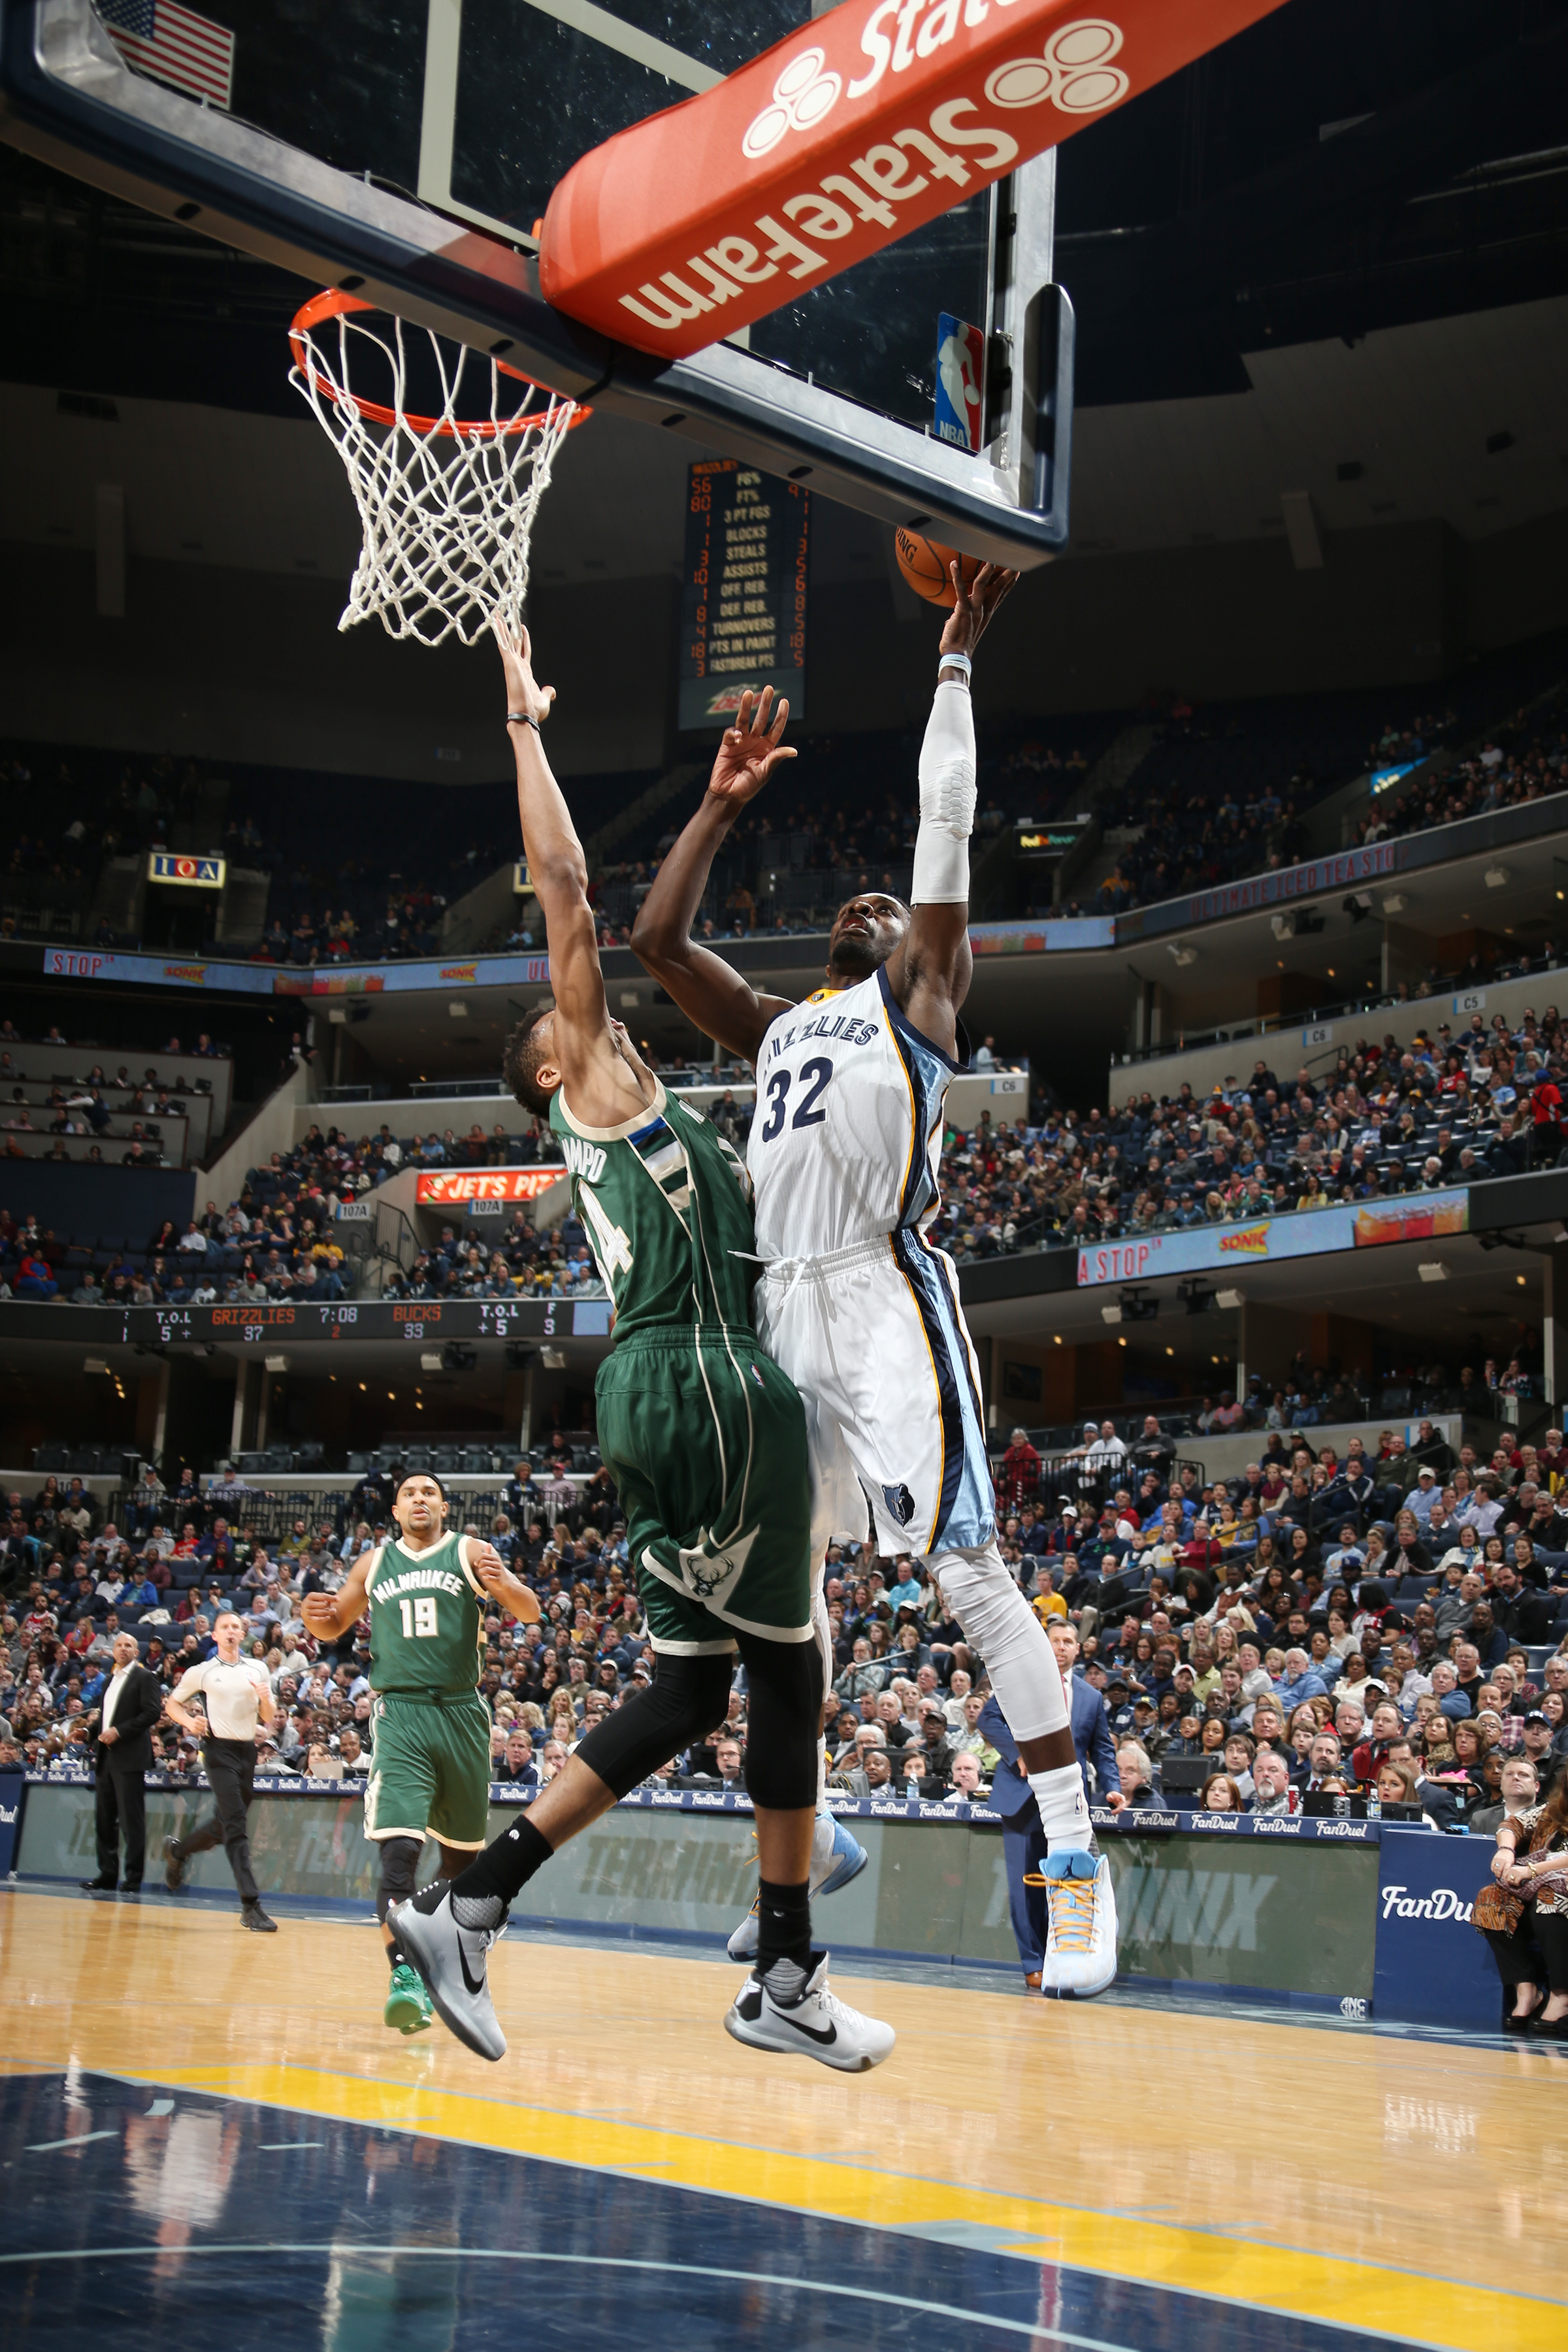 MEMPHIS, TN - JANUARY 28:  Jeff Green #32 of the Memphis Grizzlies shoots the ball against the Milwaukee Bucks on January 28, 2016 at FedExForum in Memphis, Tennessee. (Photo by Joe Murphy/NBAE via Getty Images)